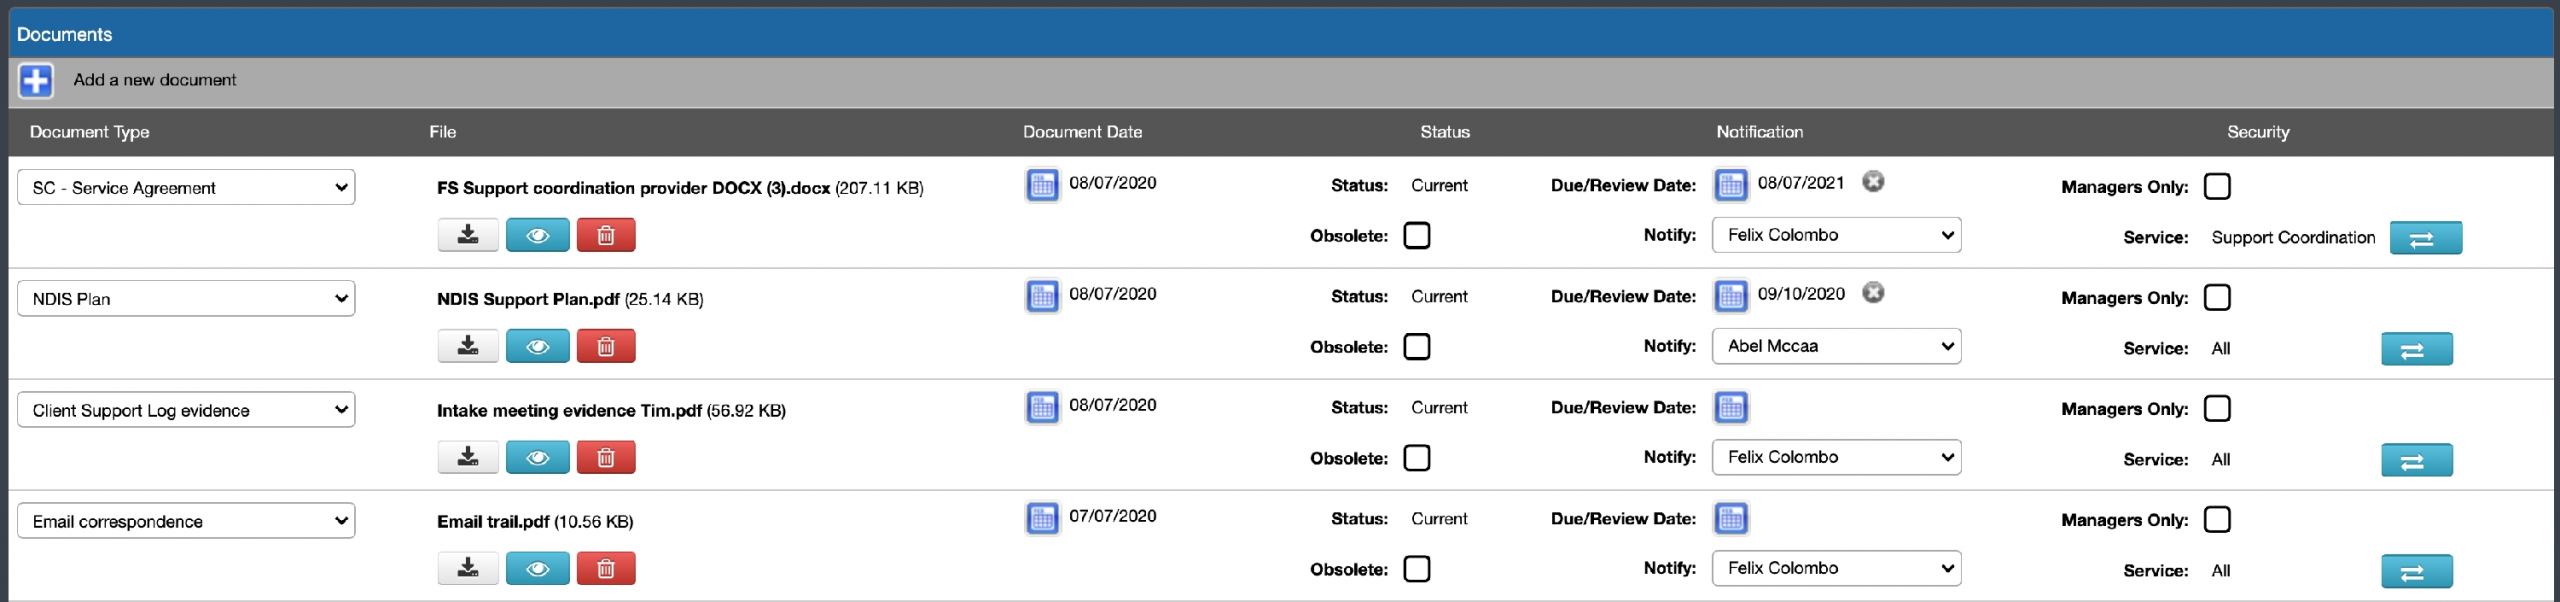 Download And Preview Documents - Supportability Knowledge Base